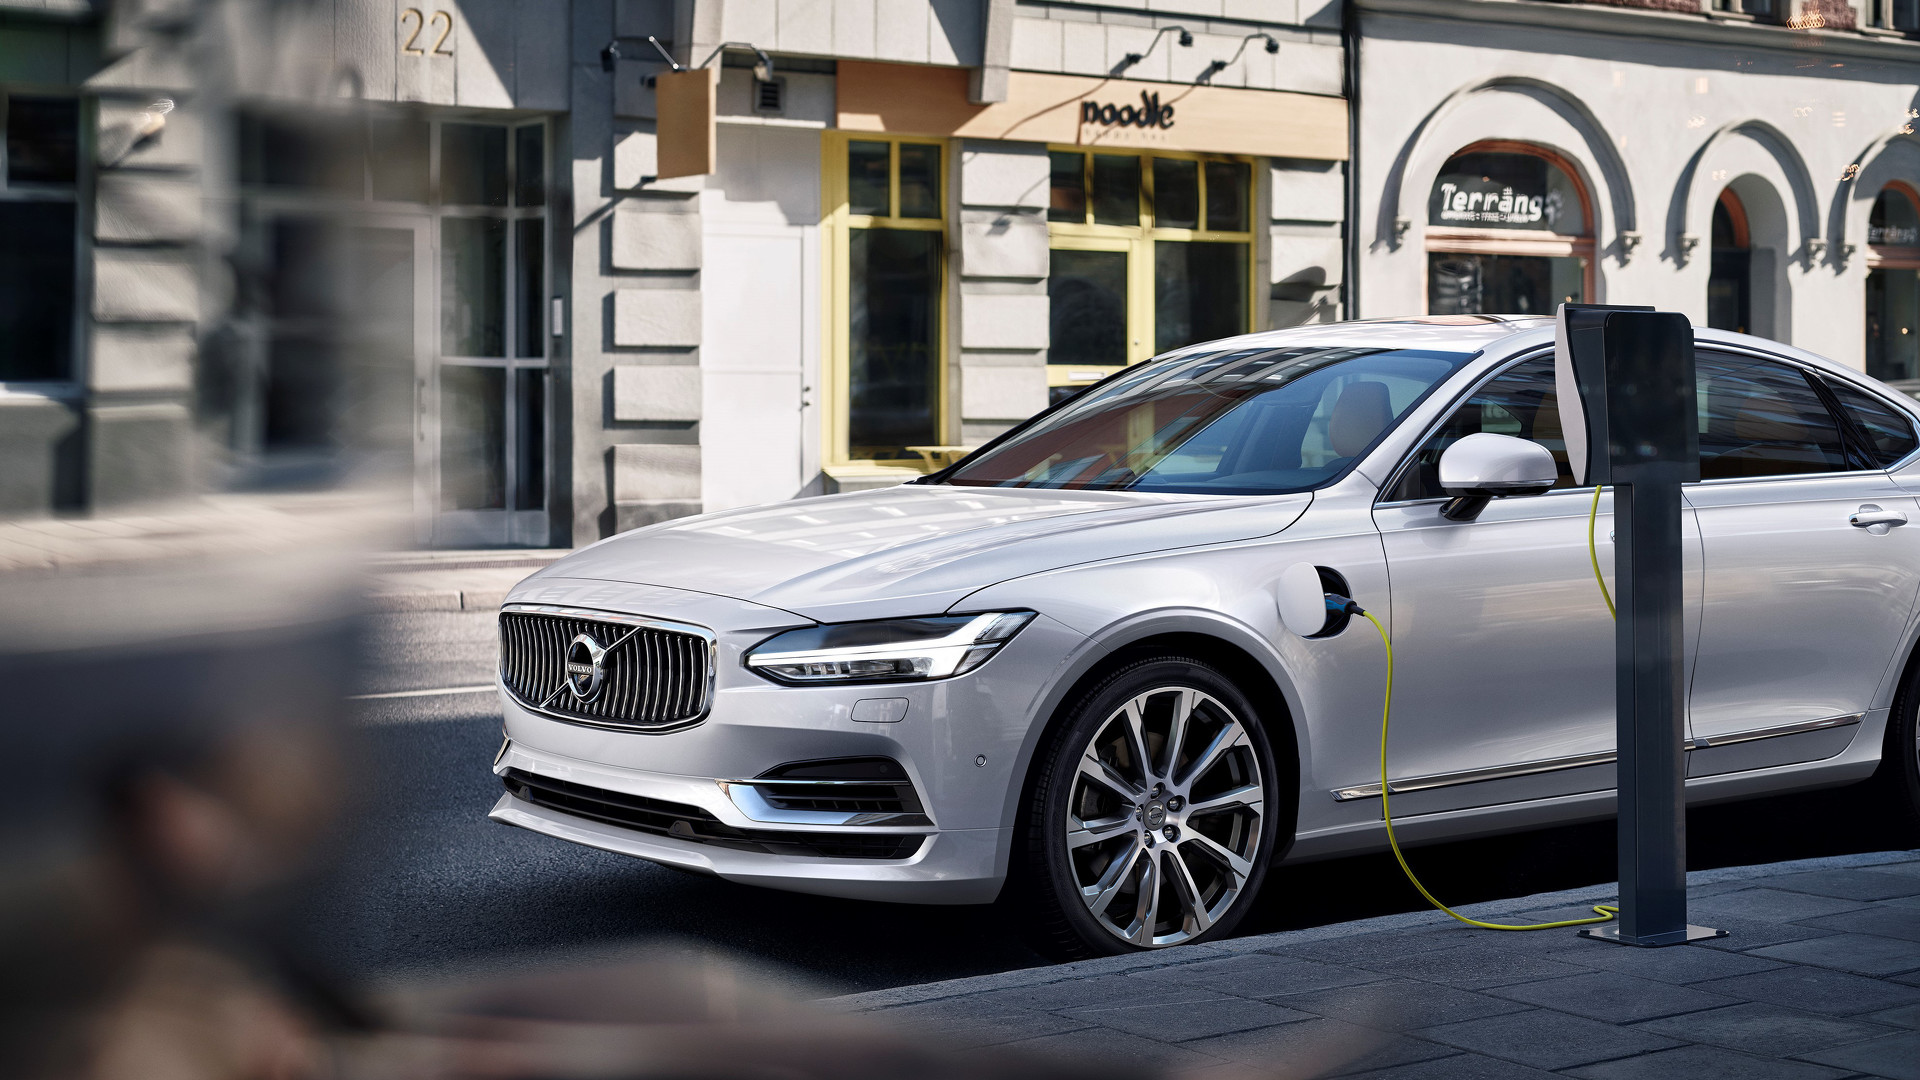 and off azobb fan volvo the not control o climate will turn battery is draining